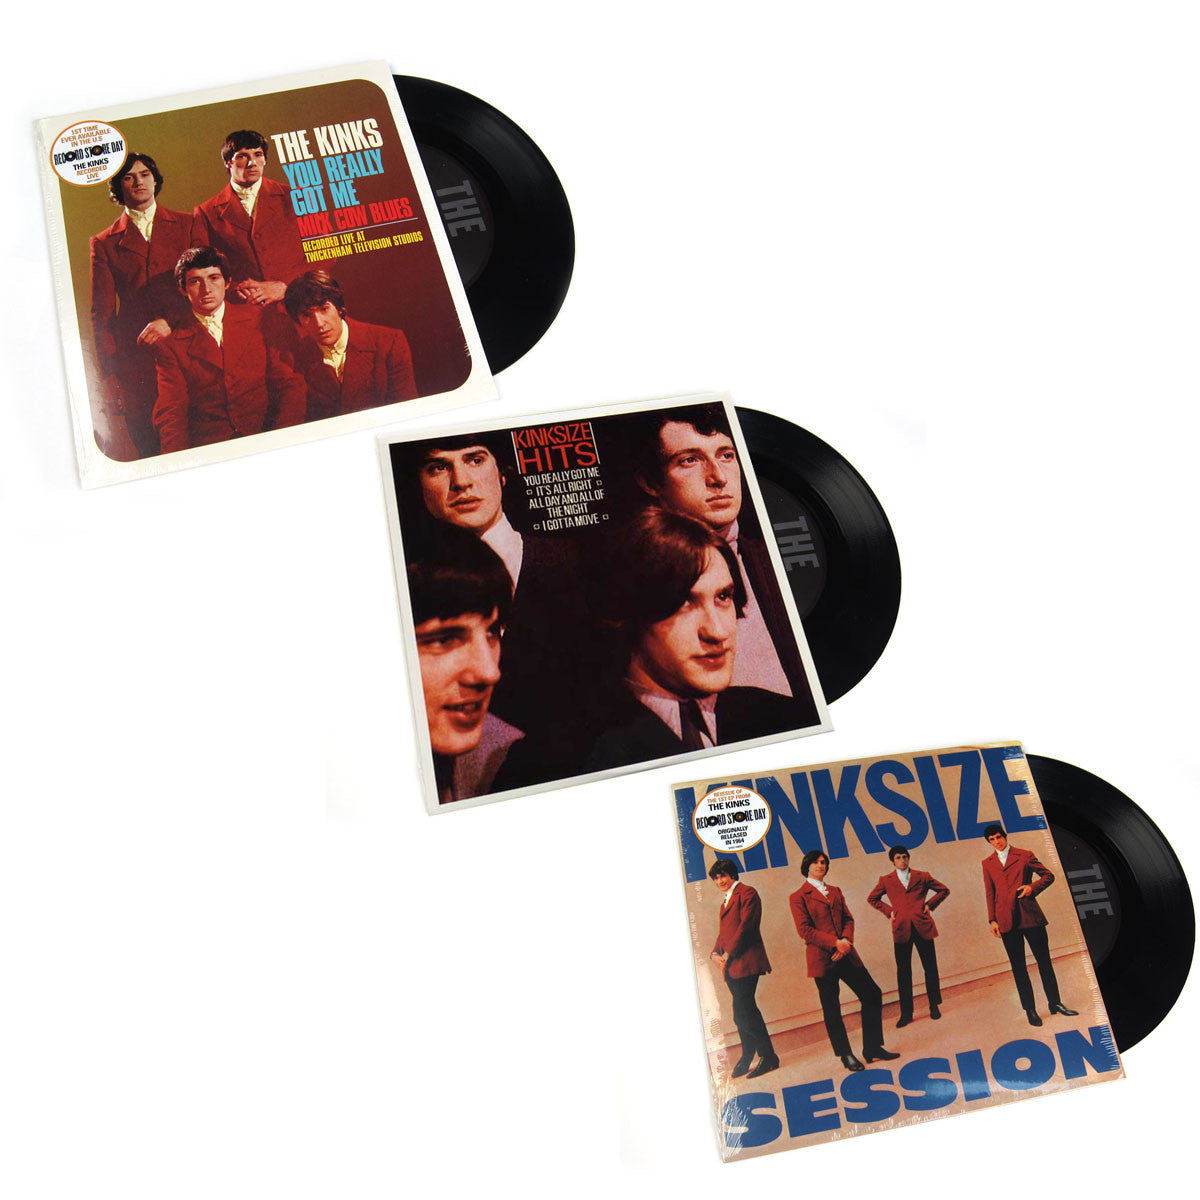 "The Kinks: Vinyl 7"" Pack (You Really Got Me, Kinksize Hits, Kinksize Session)"